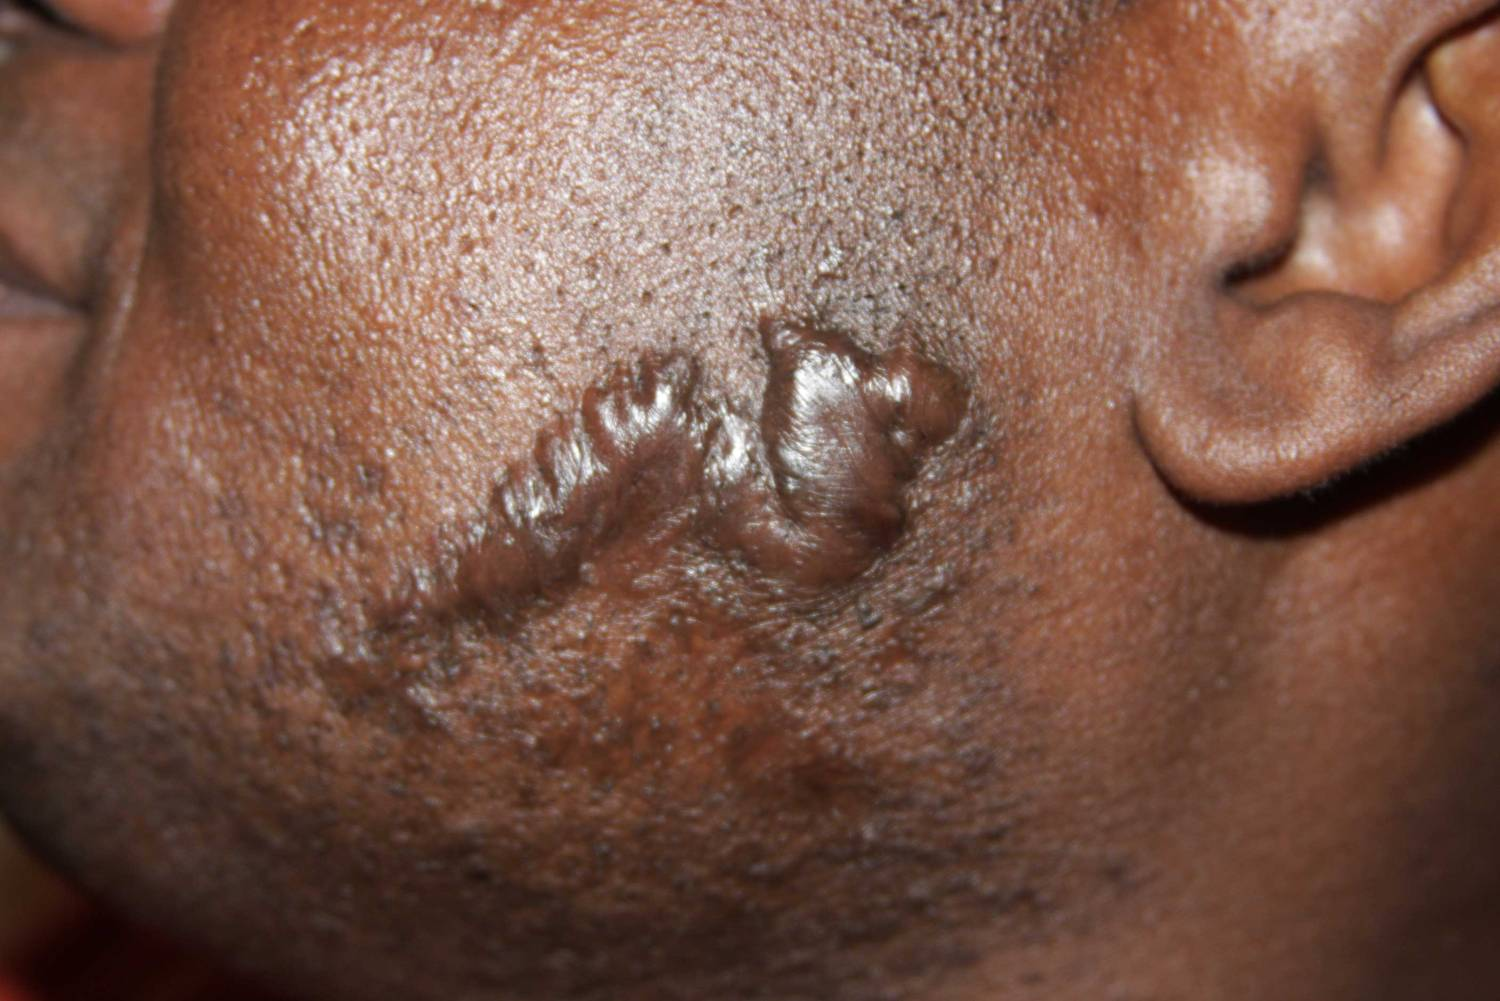 Recurrent keloid after surgical removal